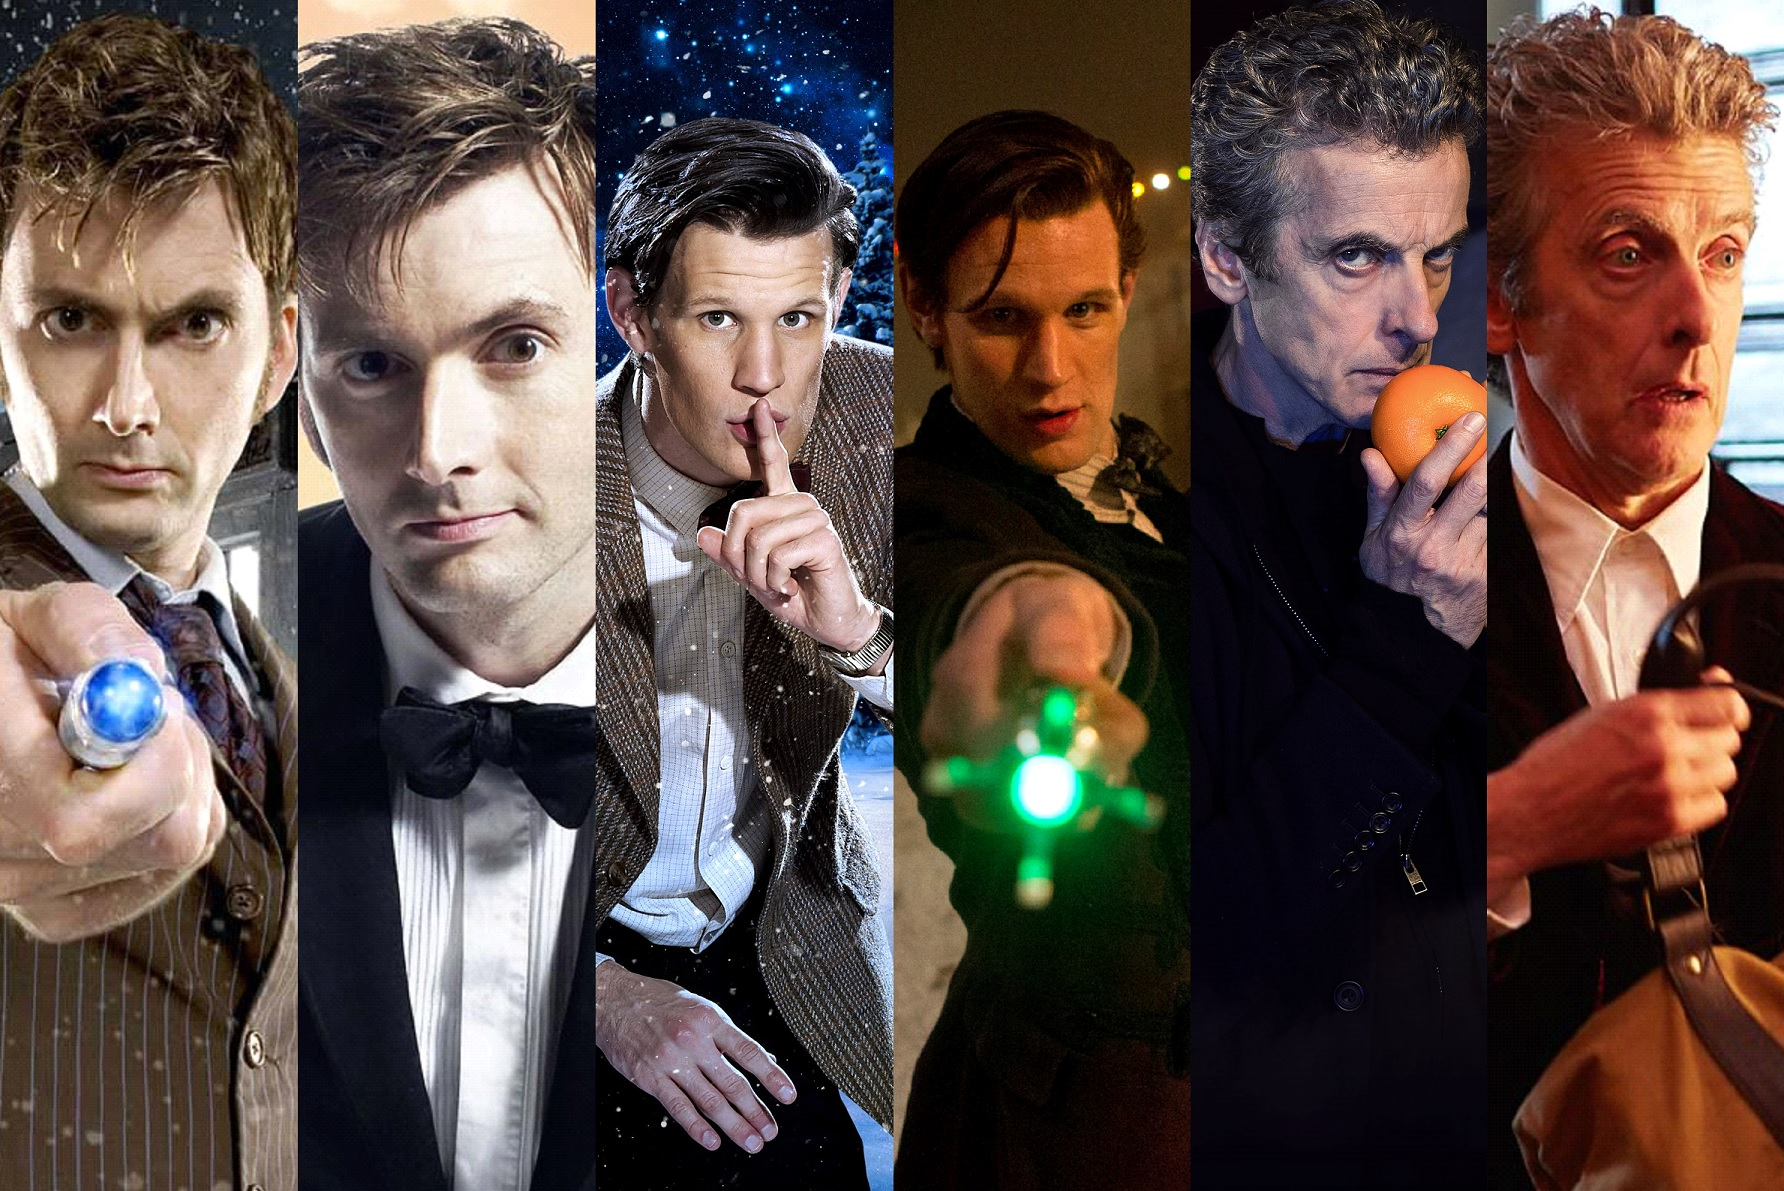 Doctor Who Christmas Special 2016.What S The Most Watched Doctor Who Christmas Special The